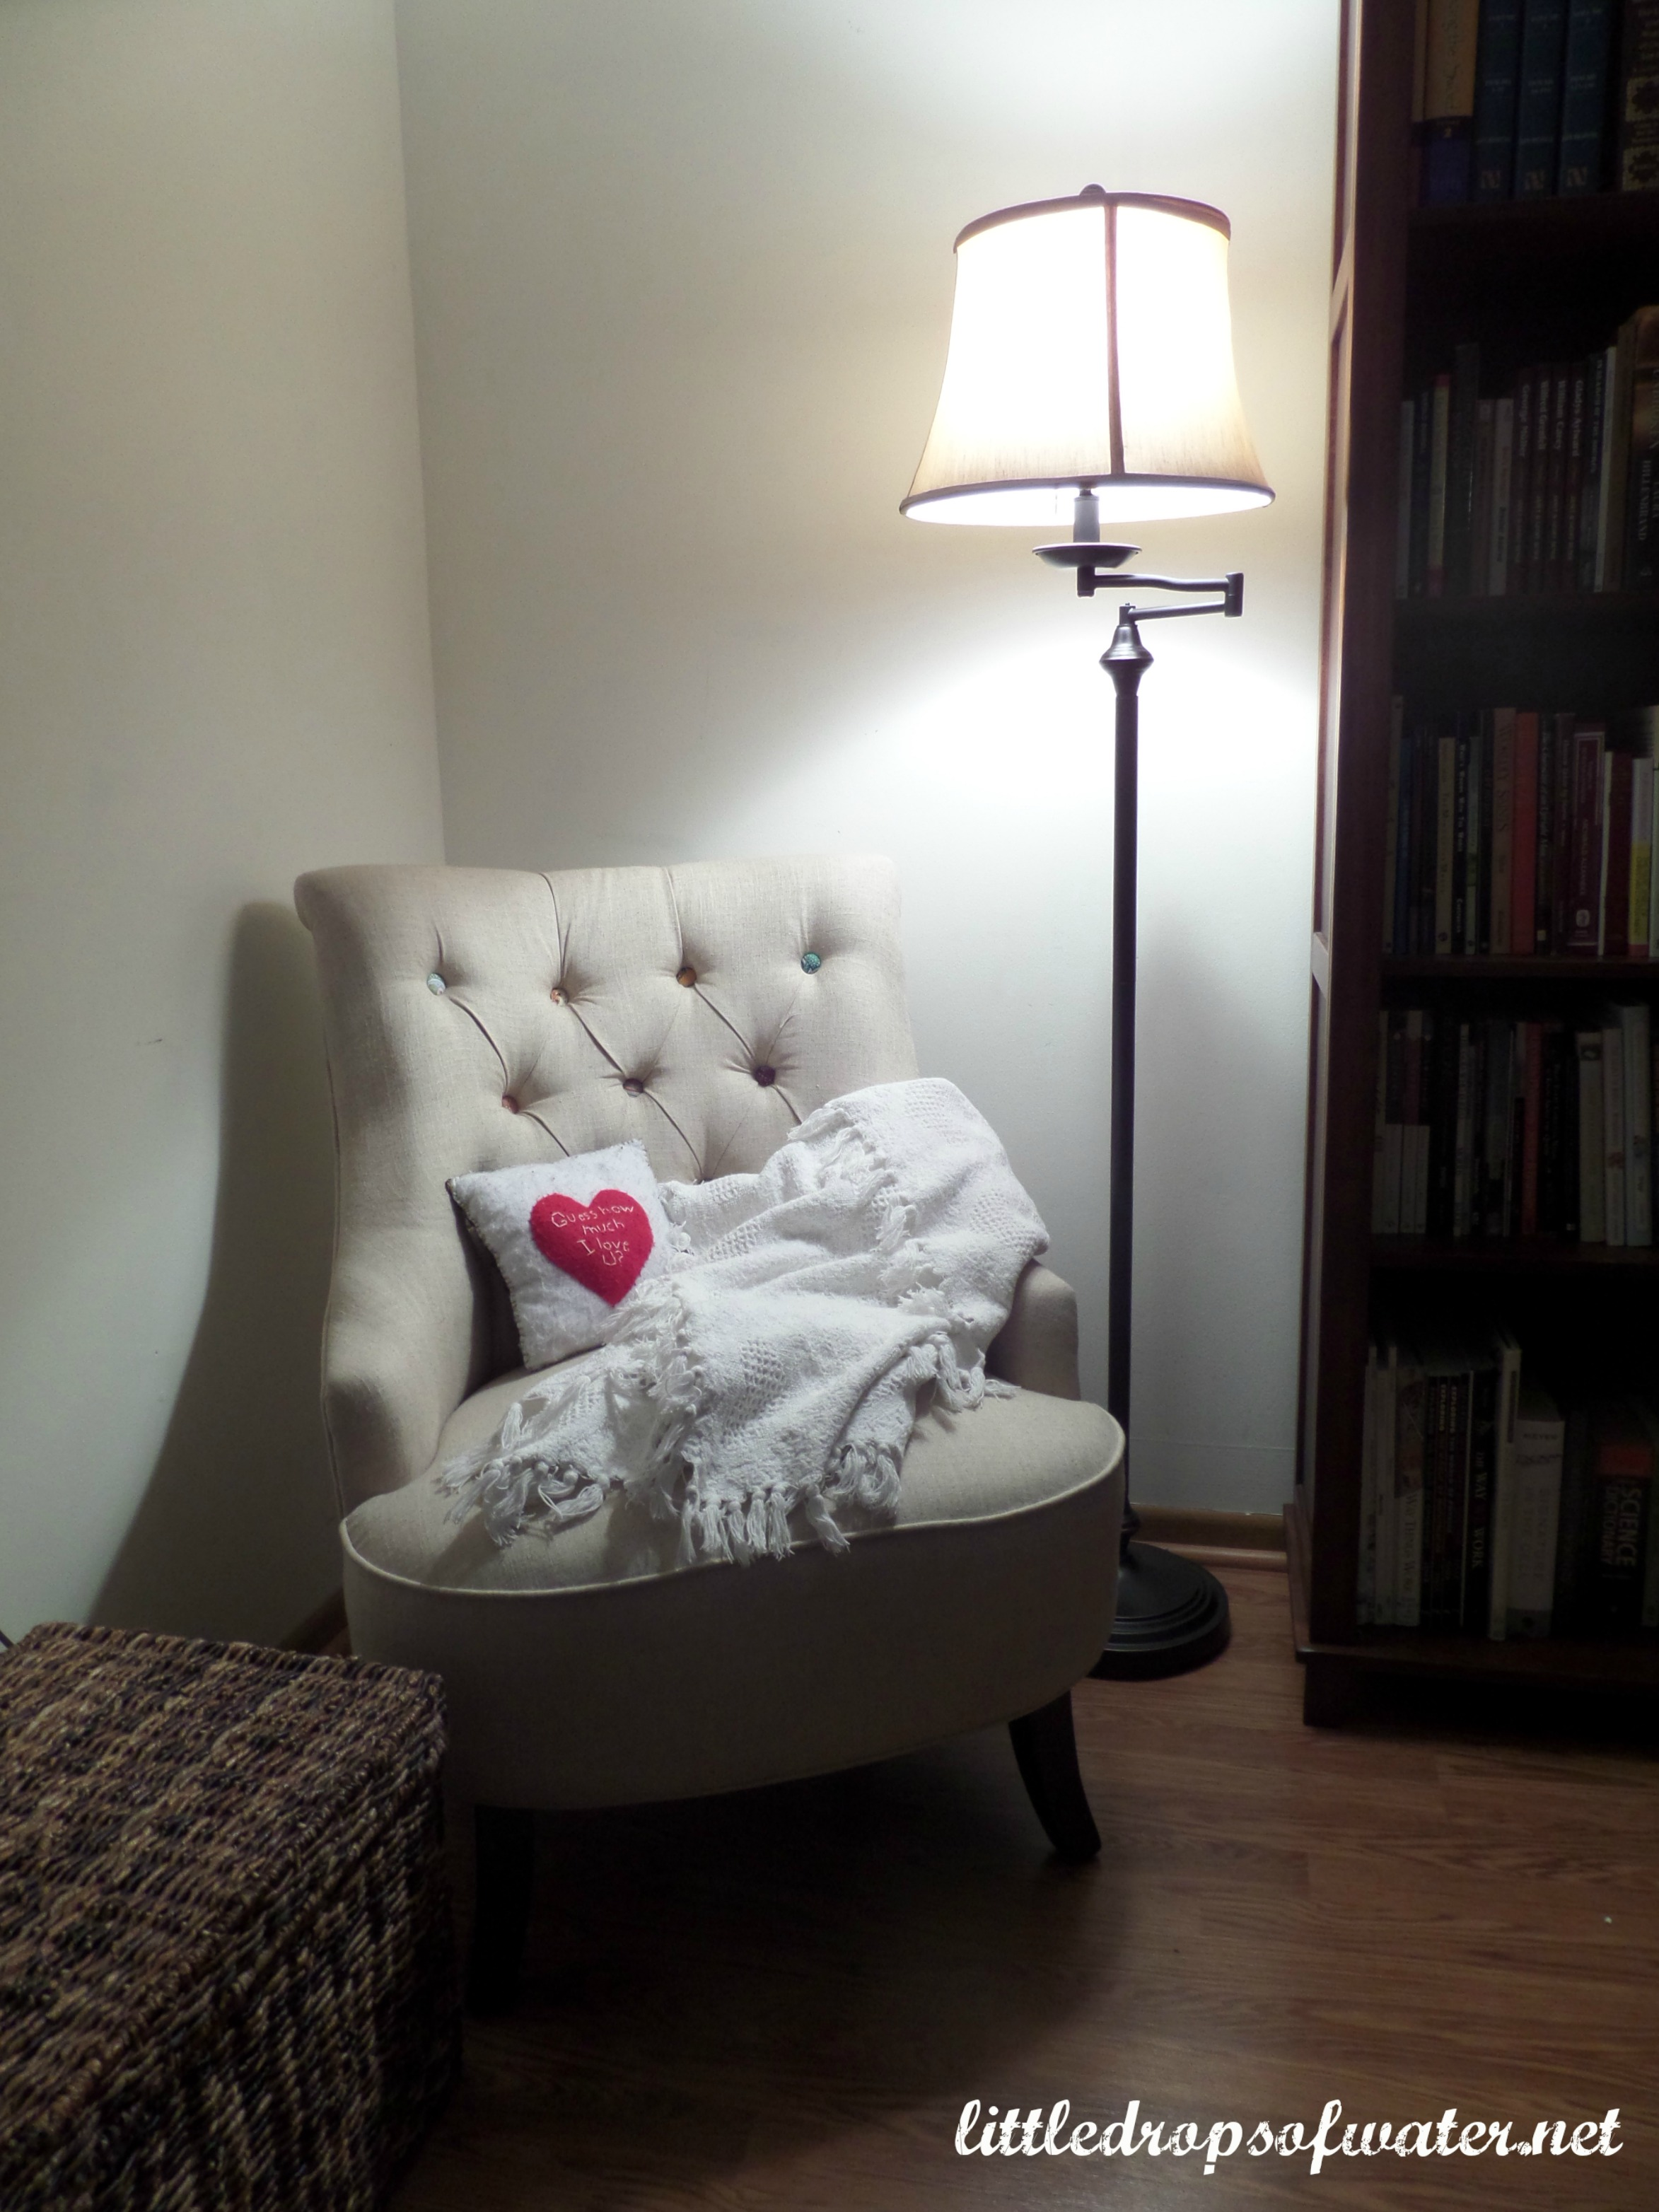 31 Days of Tackling the To-Do List: Reading Corner